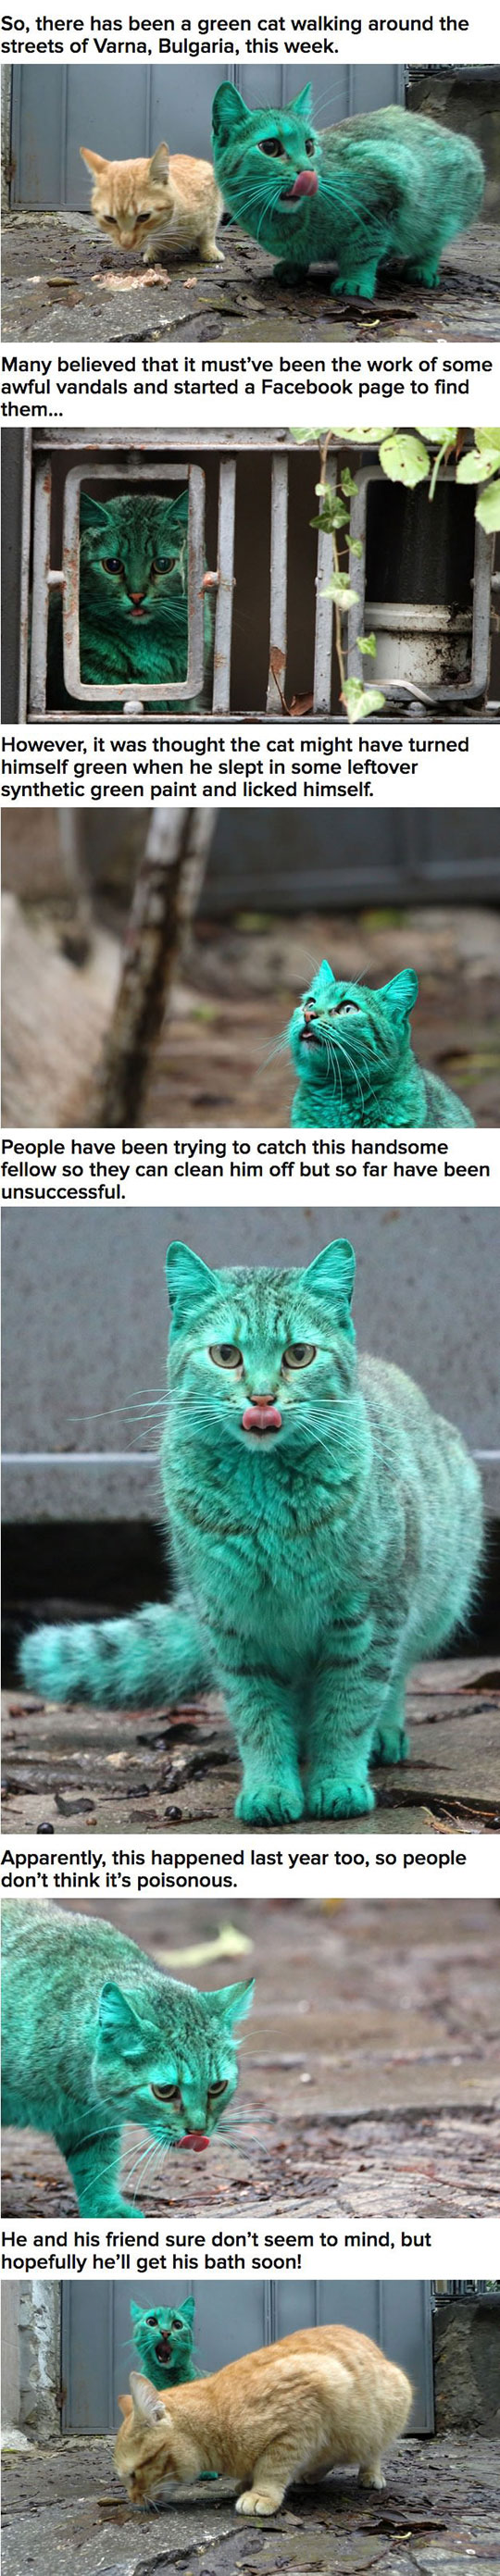 funny-cute-green-cat-Bulgaria